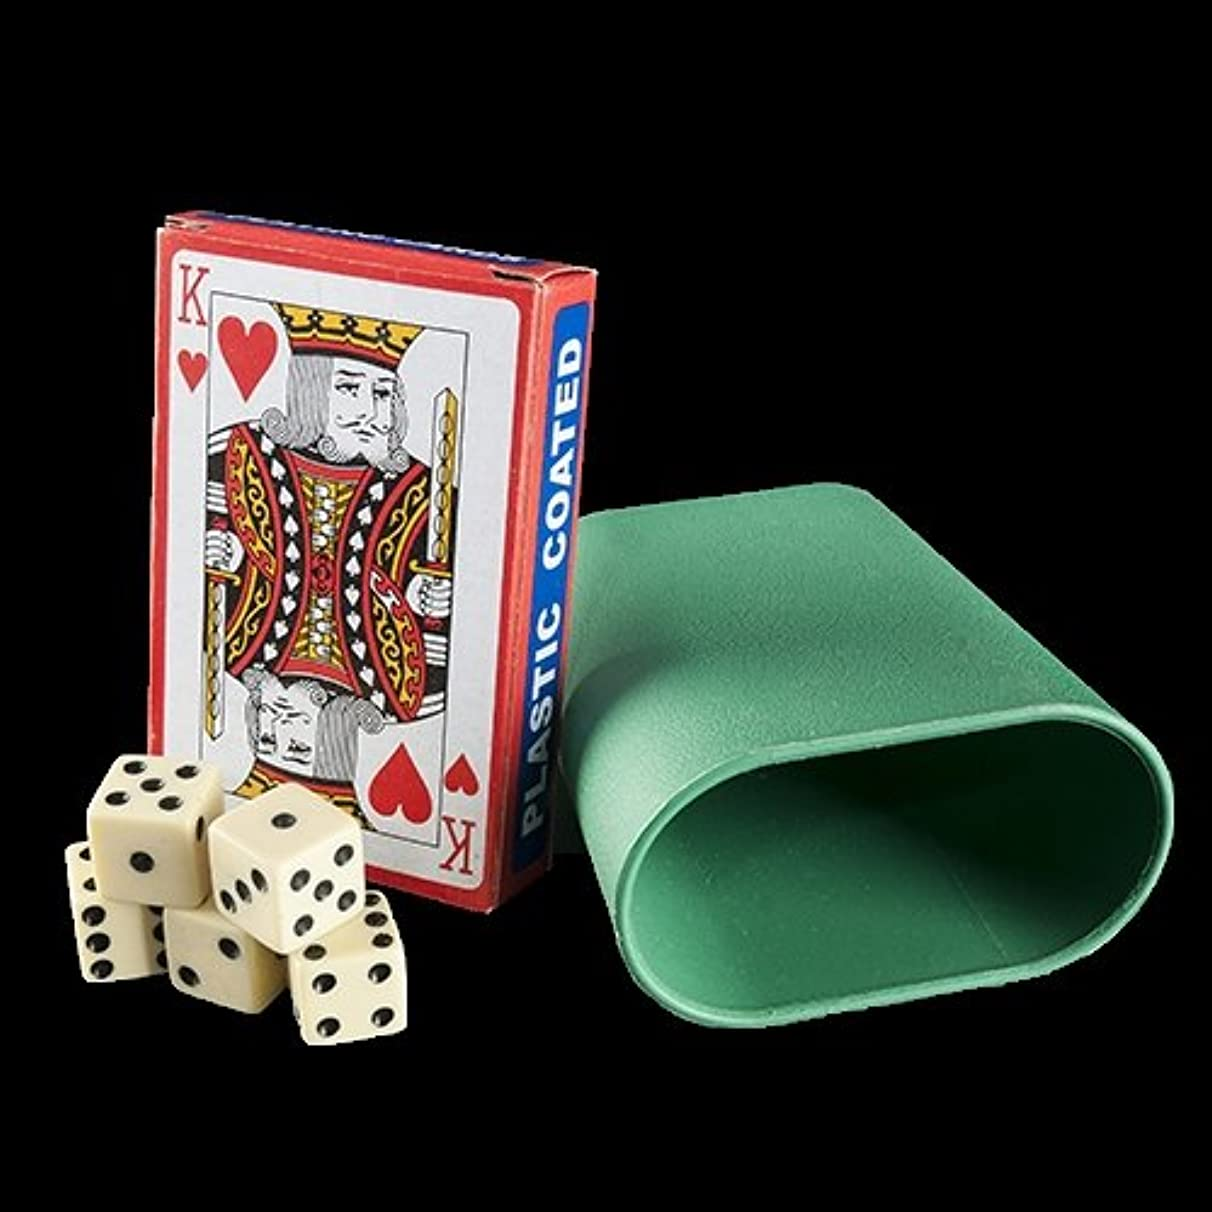 Deck of Poker Cards with Dice and Dice Cup - 1 set per pack